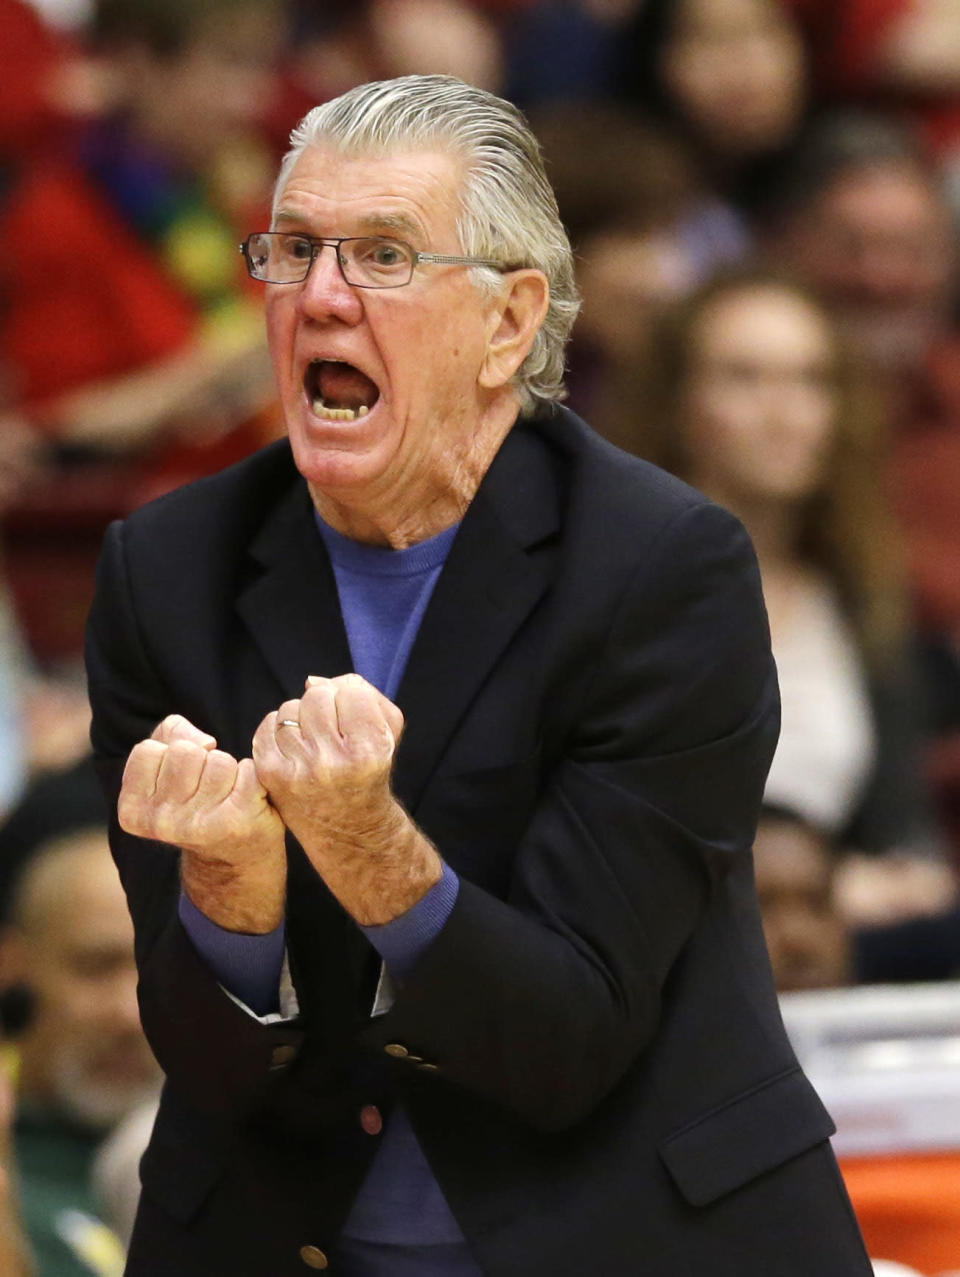 Oregon head coach Paul Westhead argues a call as his team plays Stanford during the first half of an NCAA college basketball game on Friday, Jan. 3, 2014, in Stanford, Calif. (AP Photo/Marcio Jose Sanchez)